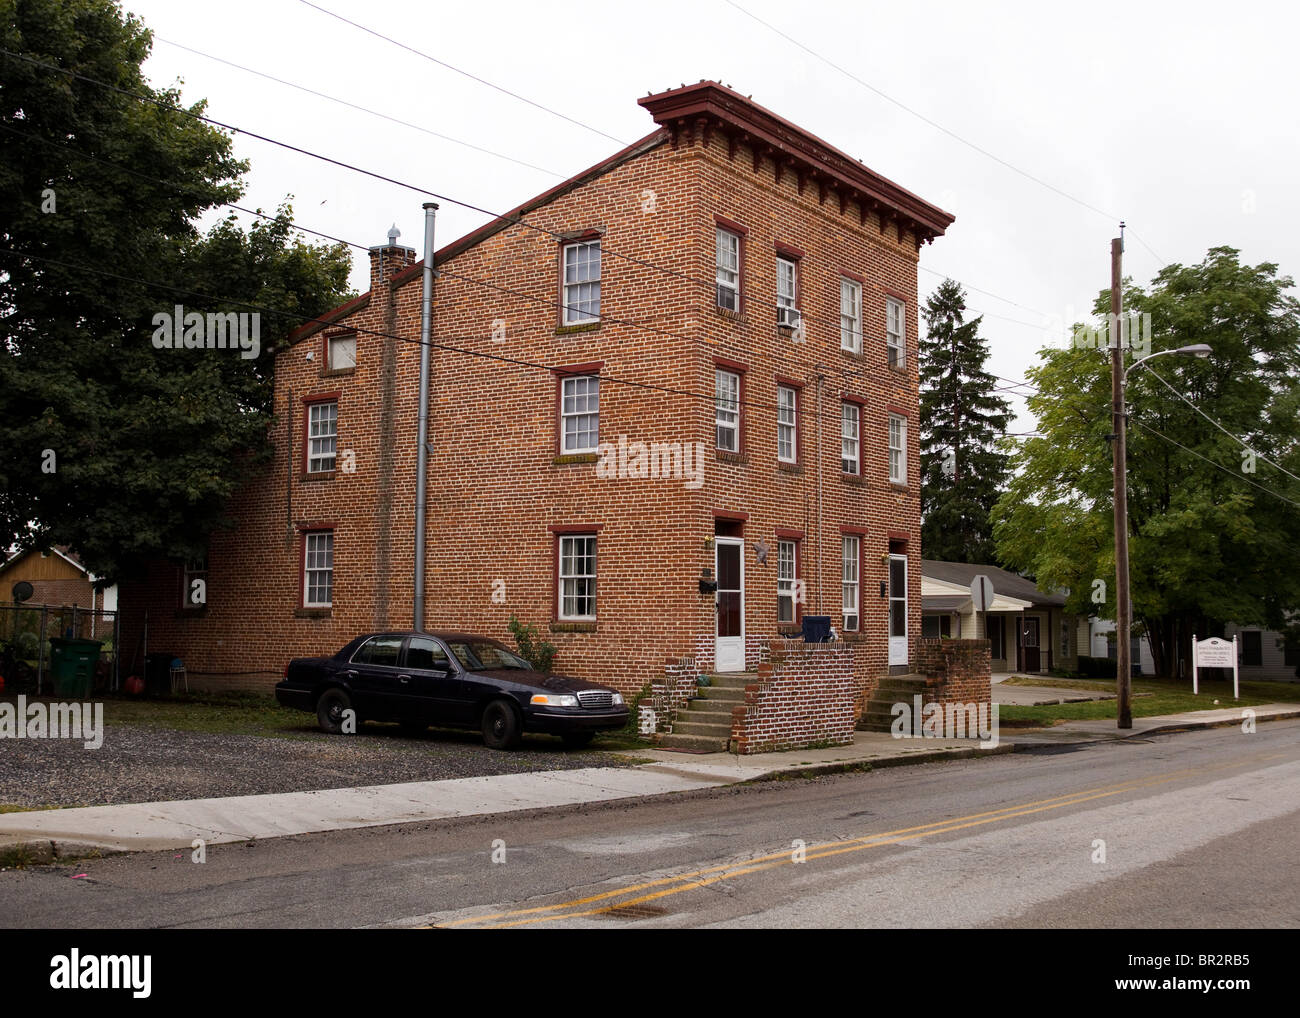 Old town brick duplex house - Stock Image